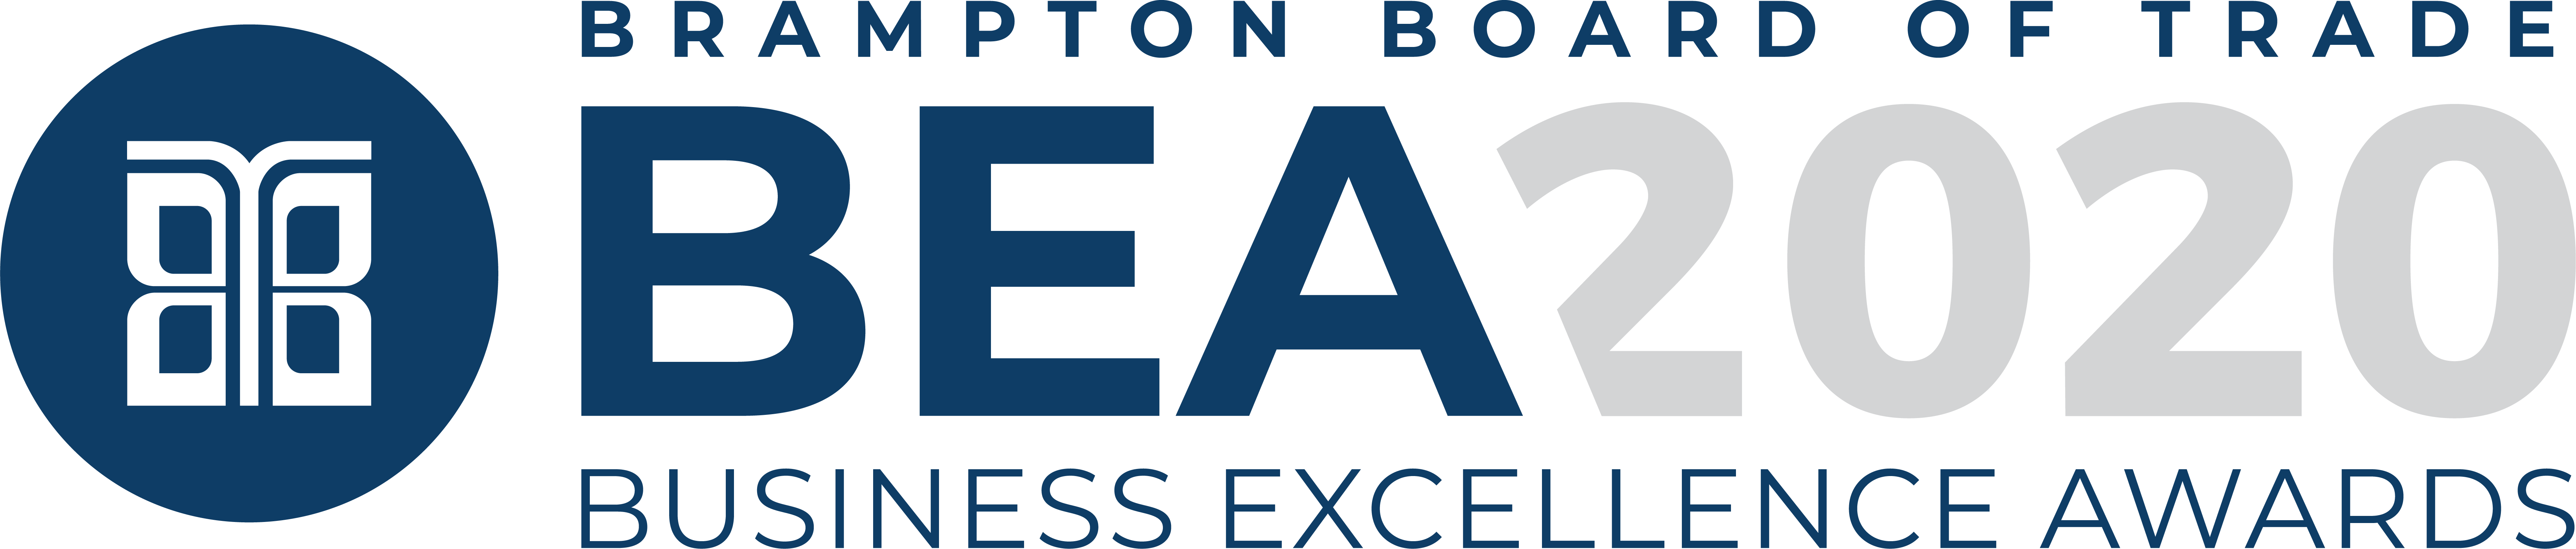 Business Excellence Awards Brampton